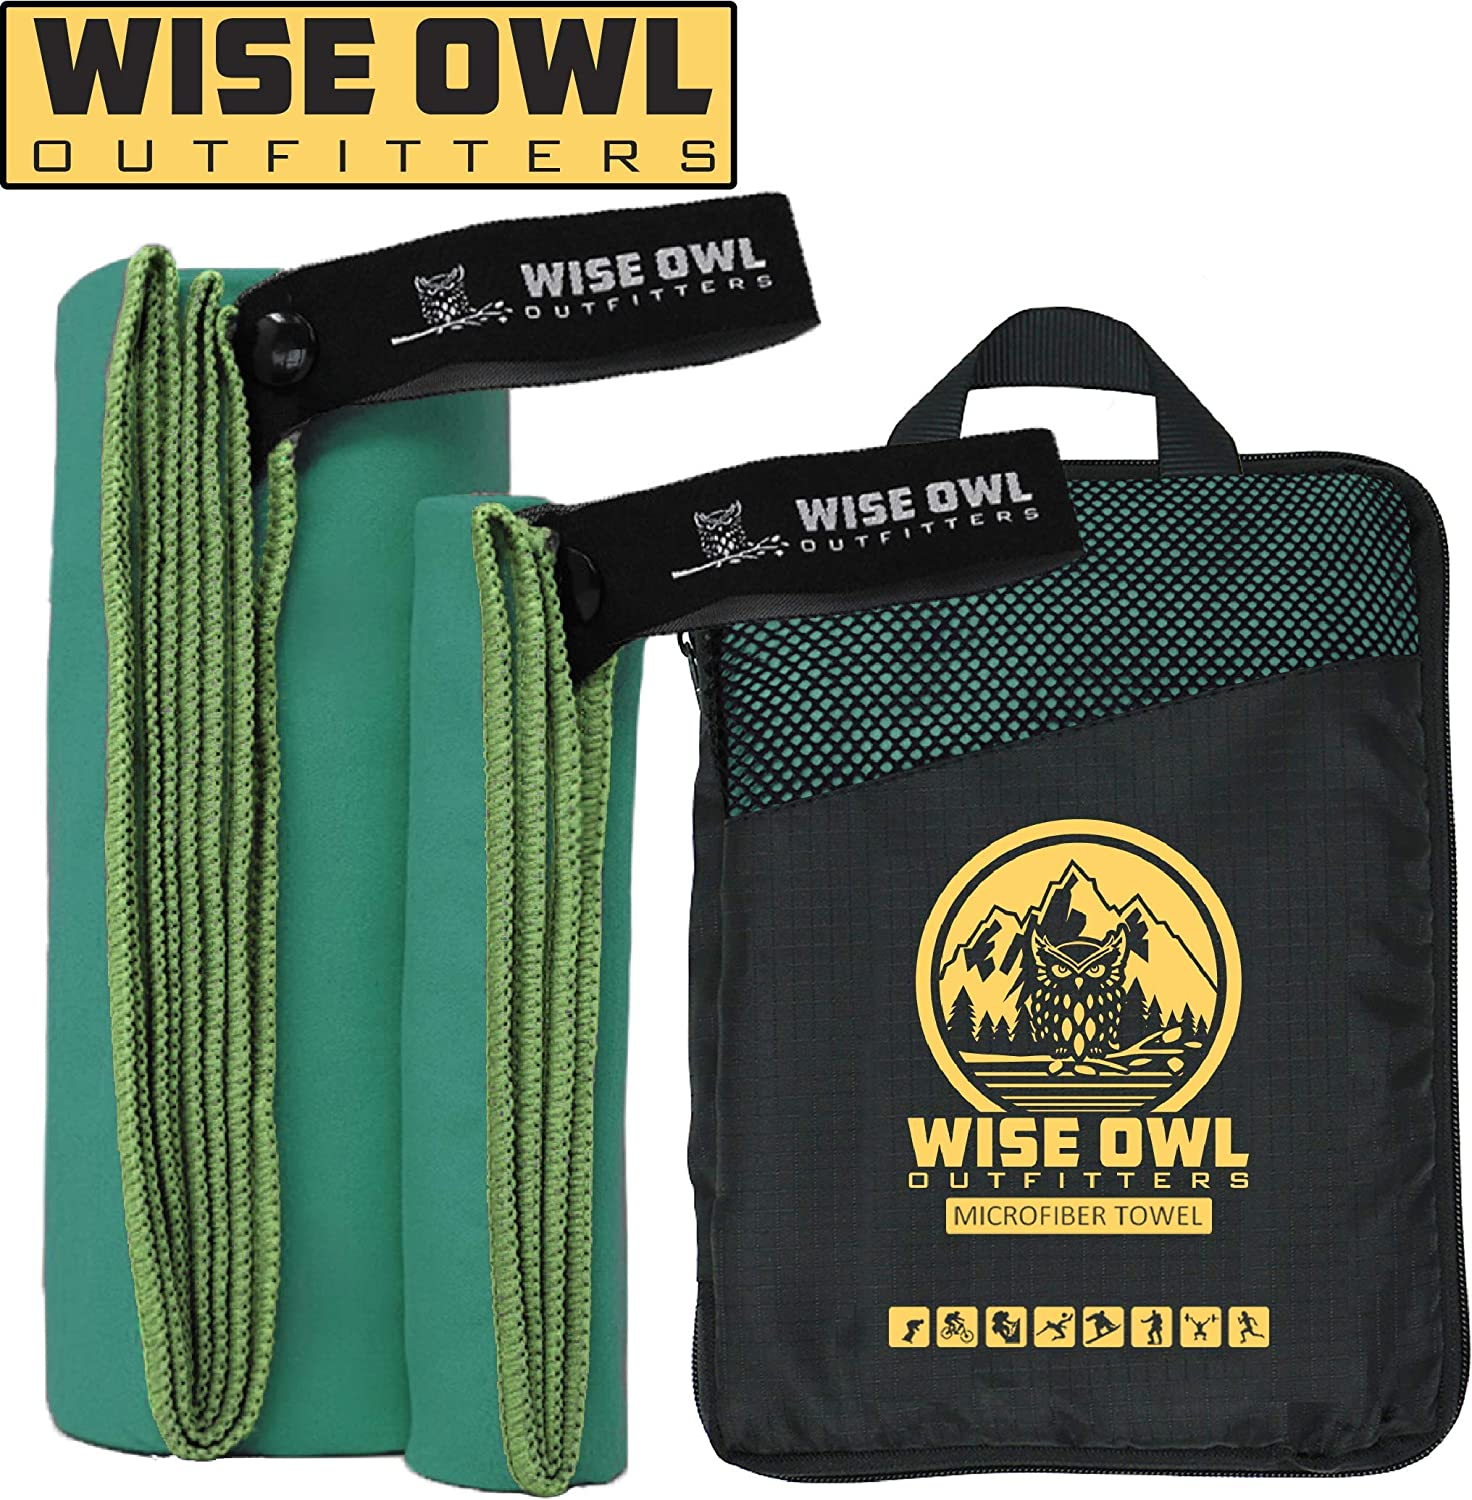 Wise Owl Outfitters Quick Dry Camping Towel